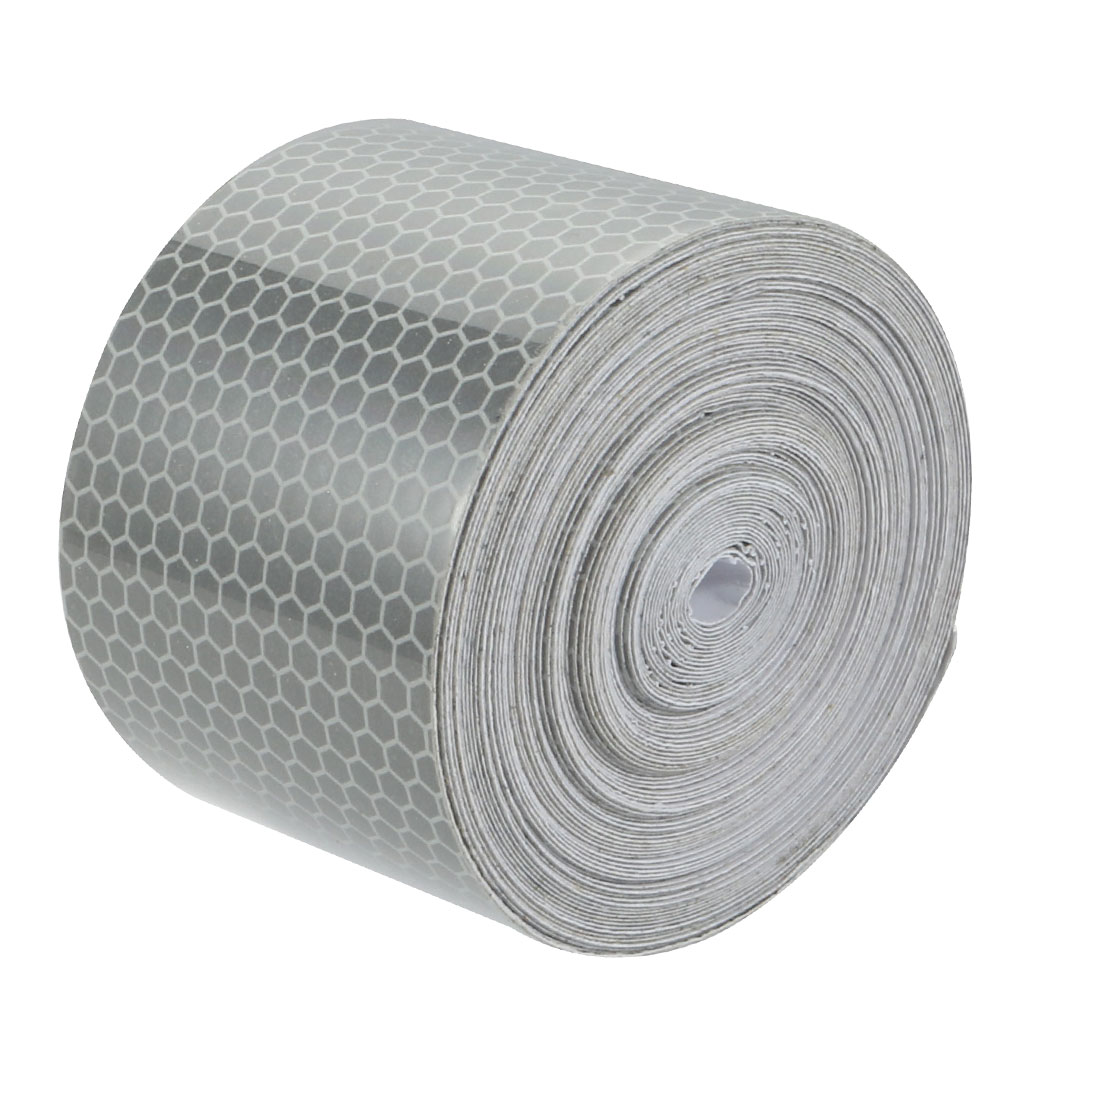 5cm Wide 10M Long Honeycomb Adhesive Reflective Warning Tape Silvery White